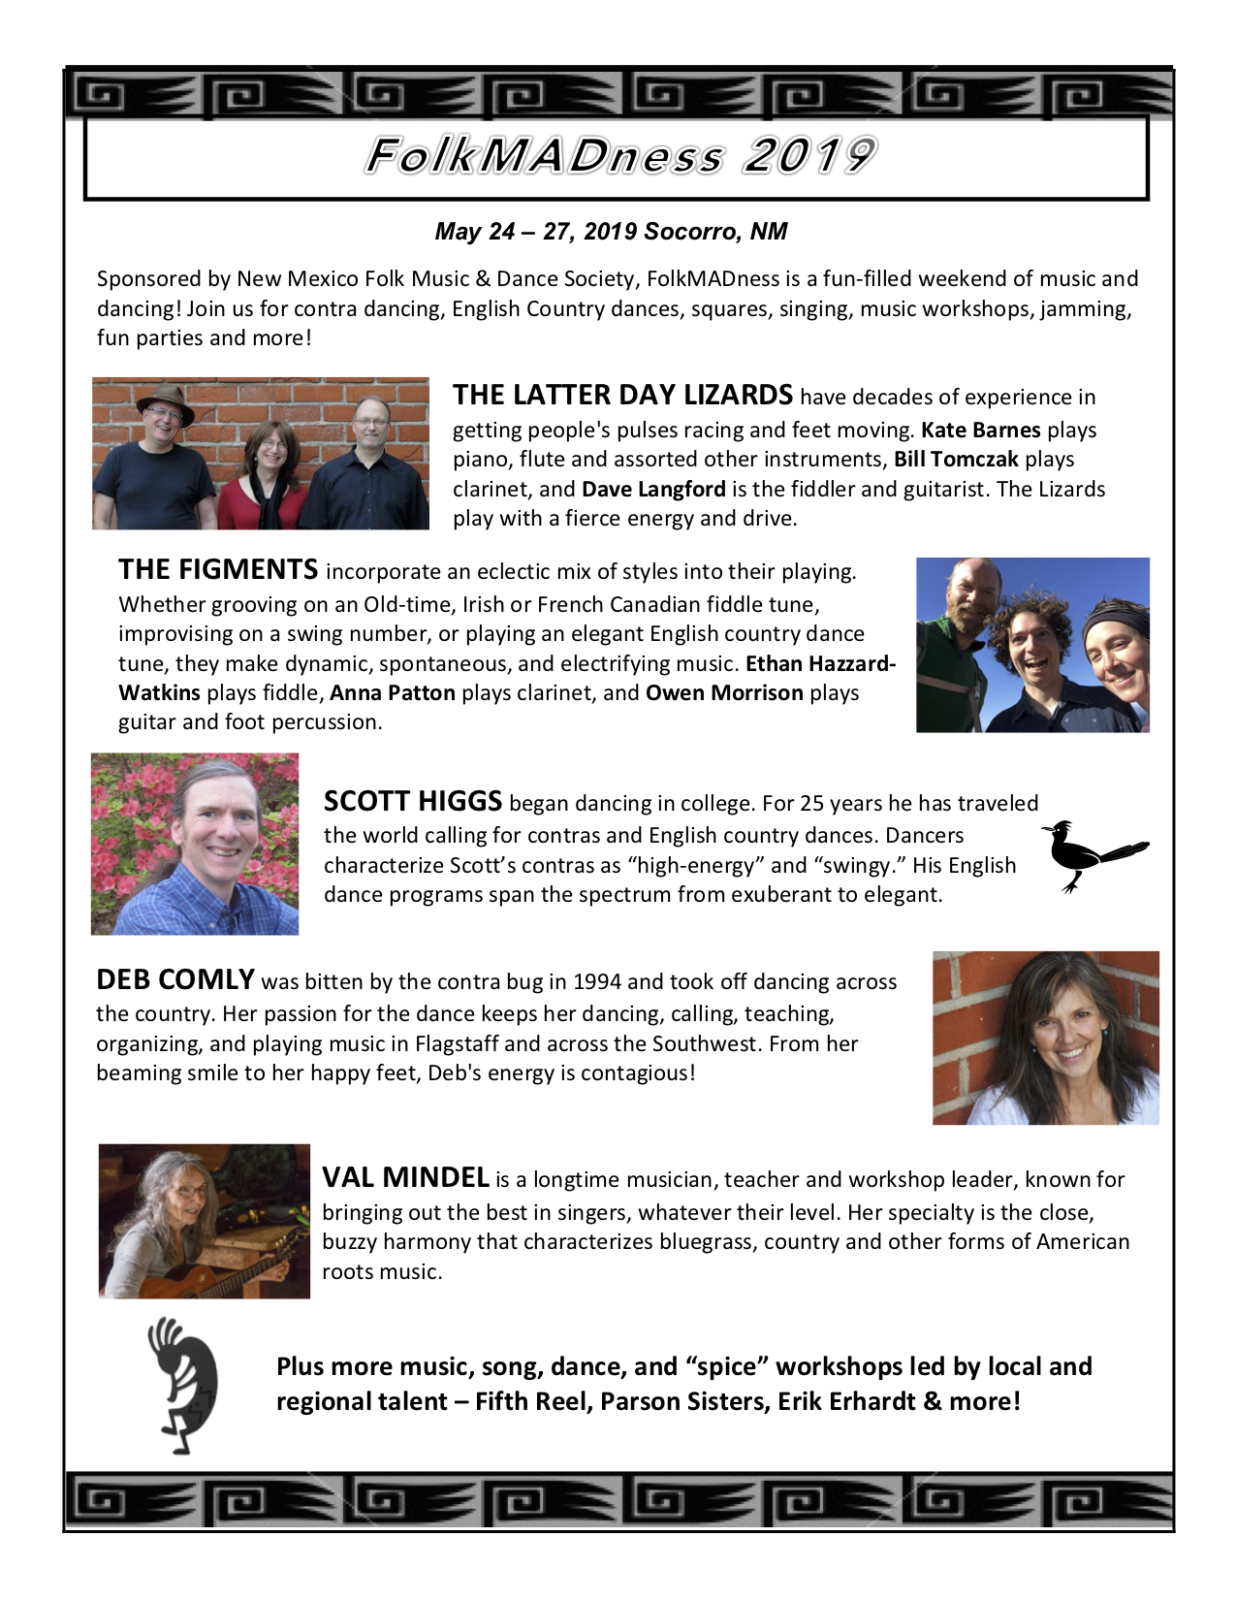 """May 27 – Plus more music, song, dance, and """"spice"""" workshops led by"""